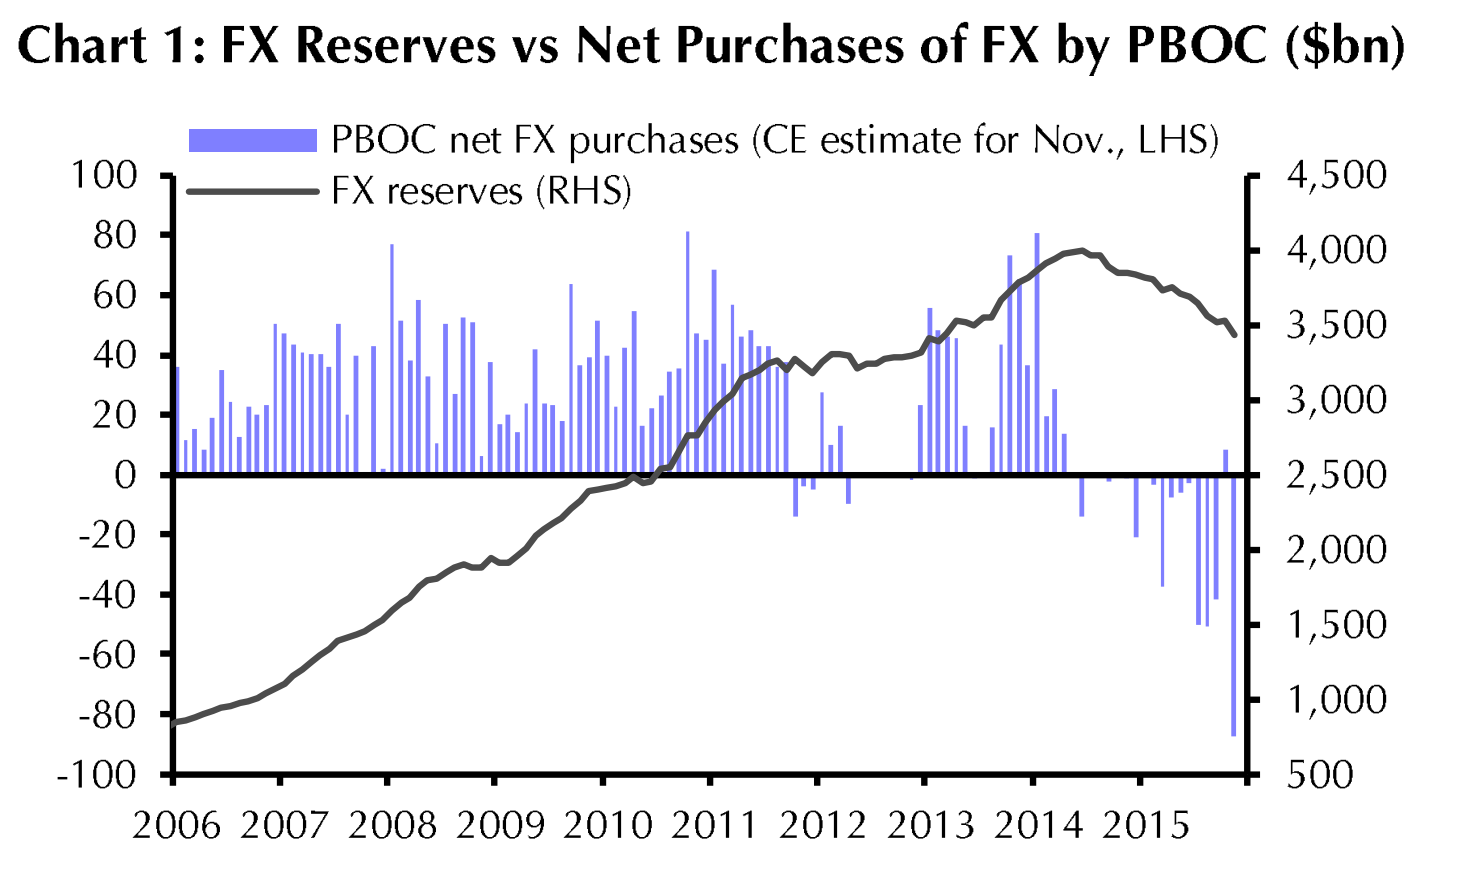 China Reserves Source: Capital Economics